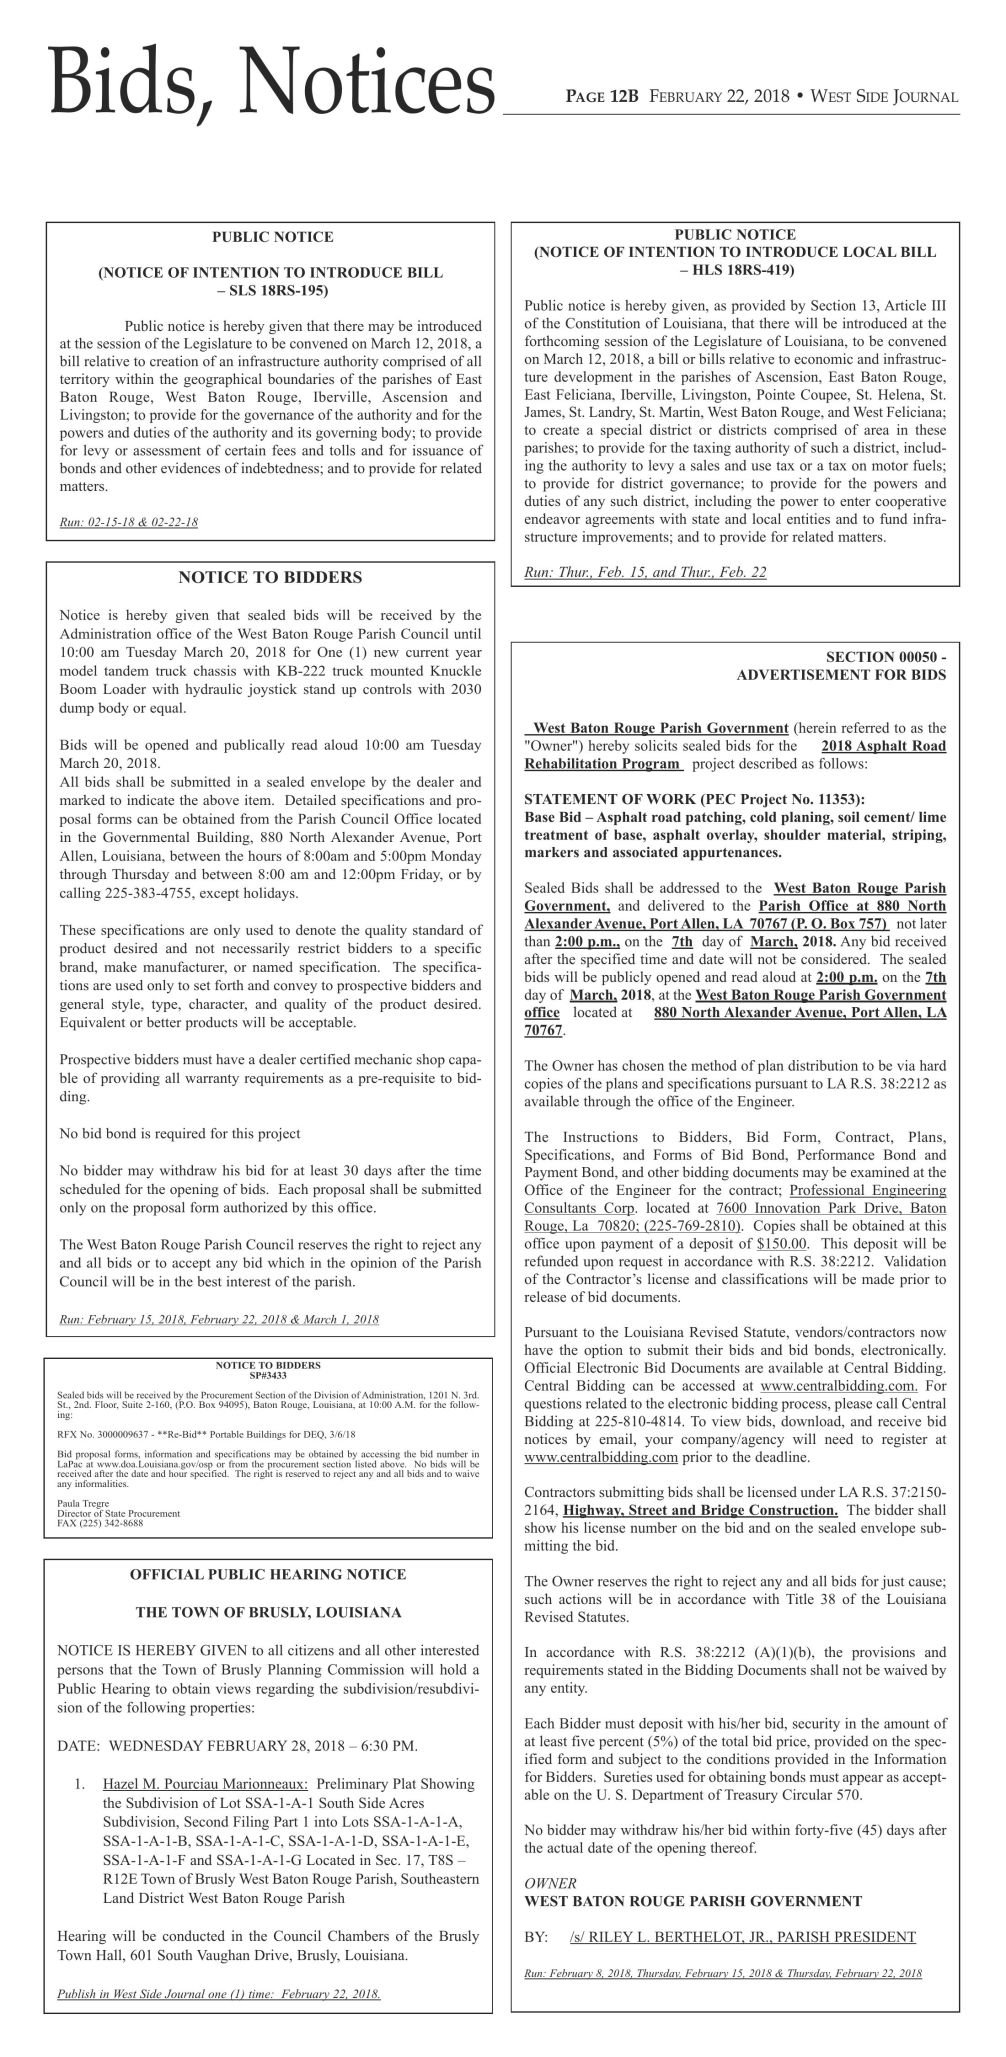 Bids & Notices 2/22/2018 (Classifieds asset)